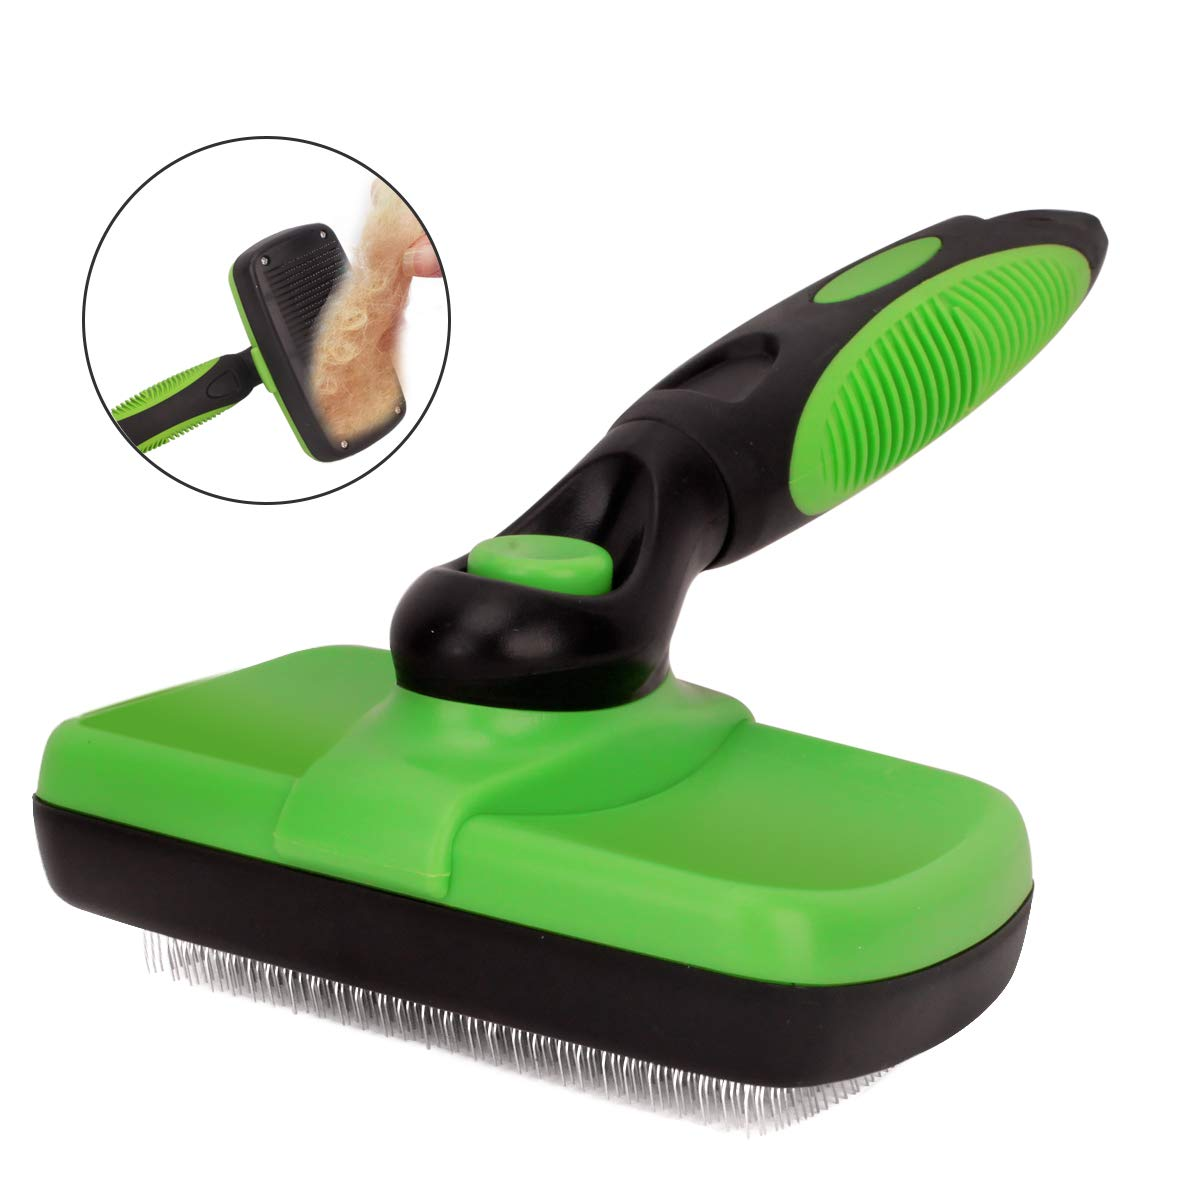 Green Bolux Pet Grooming Brush, Self Cleaning Slicker Brushes Hair Shedding Tools for Grooming Small, Medium & Large Cats and Dogs with Long Thick Hair